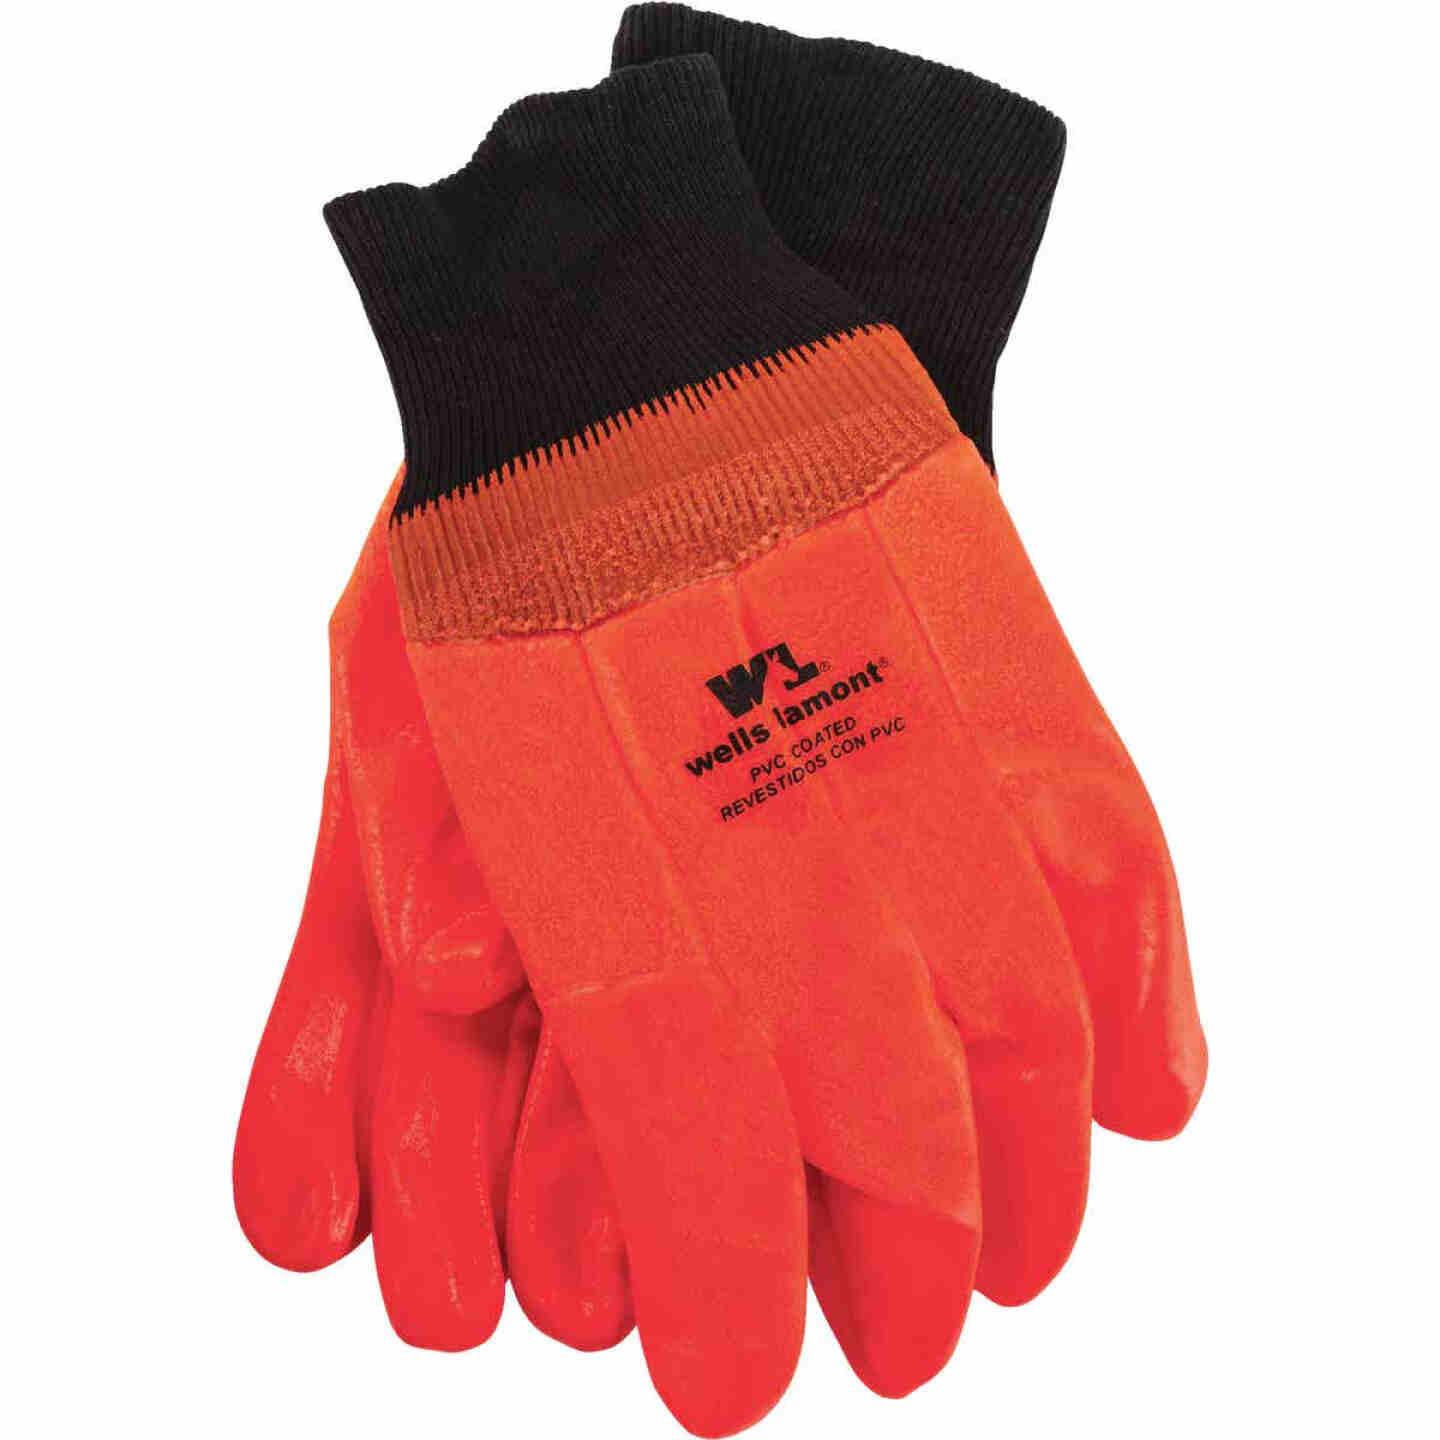 Wells Lamont Men's 1 Size Fits All PVC Coated Cotton Chemical Resistant Winter Glove Image 1